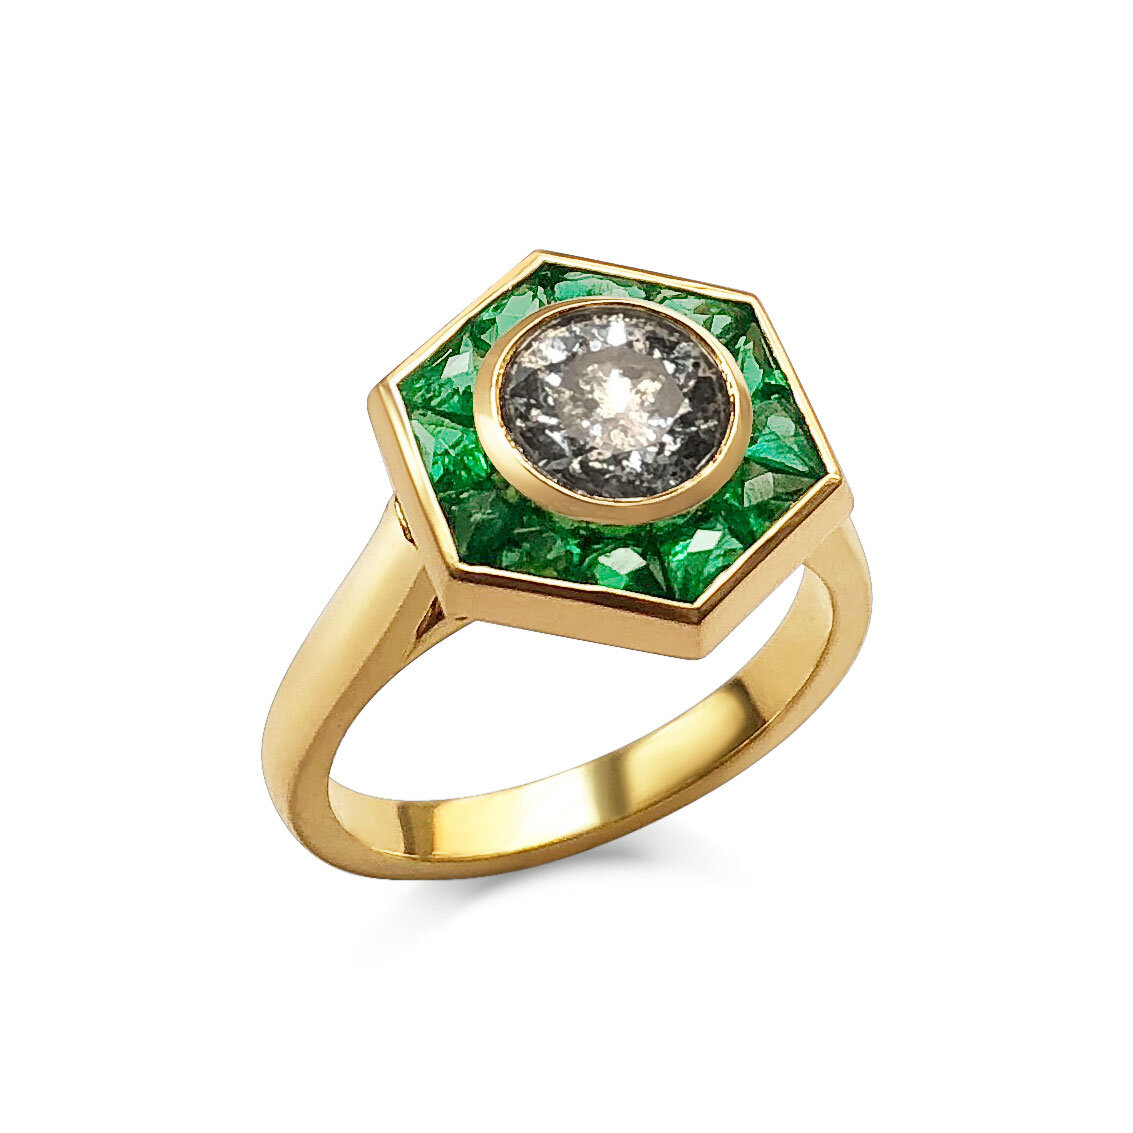 Salt & Pepper Diamond and french-cut emerald ring mounted in 18ct yellow gold